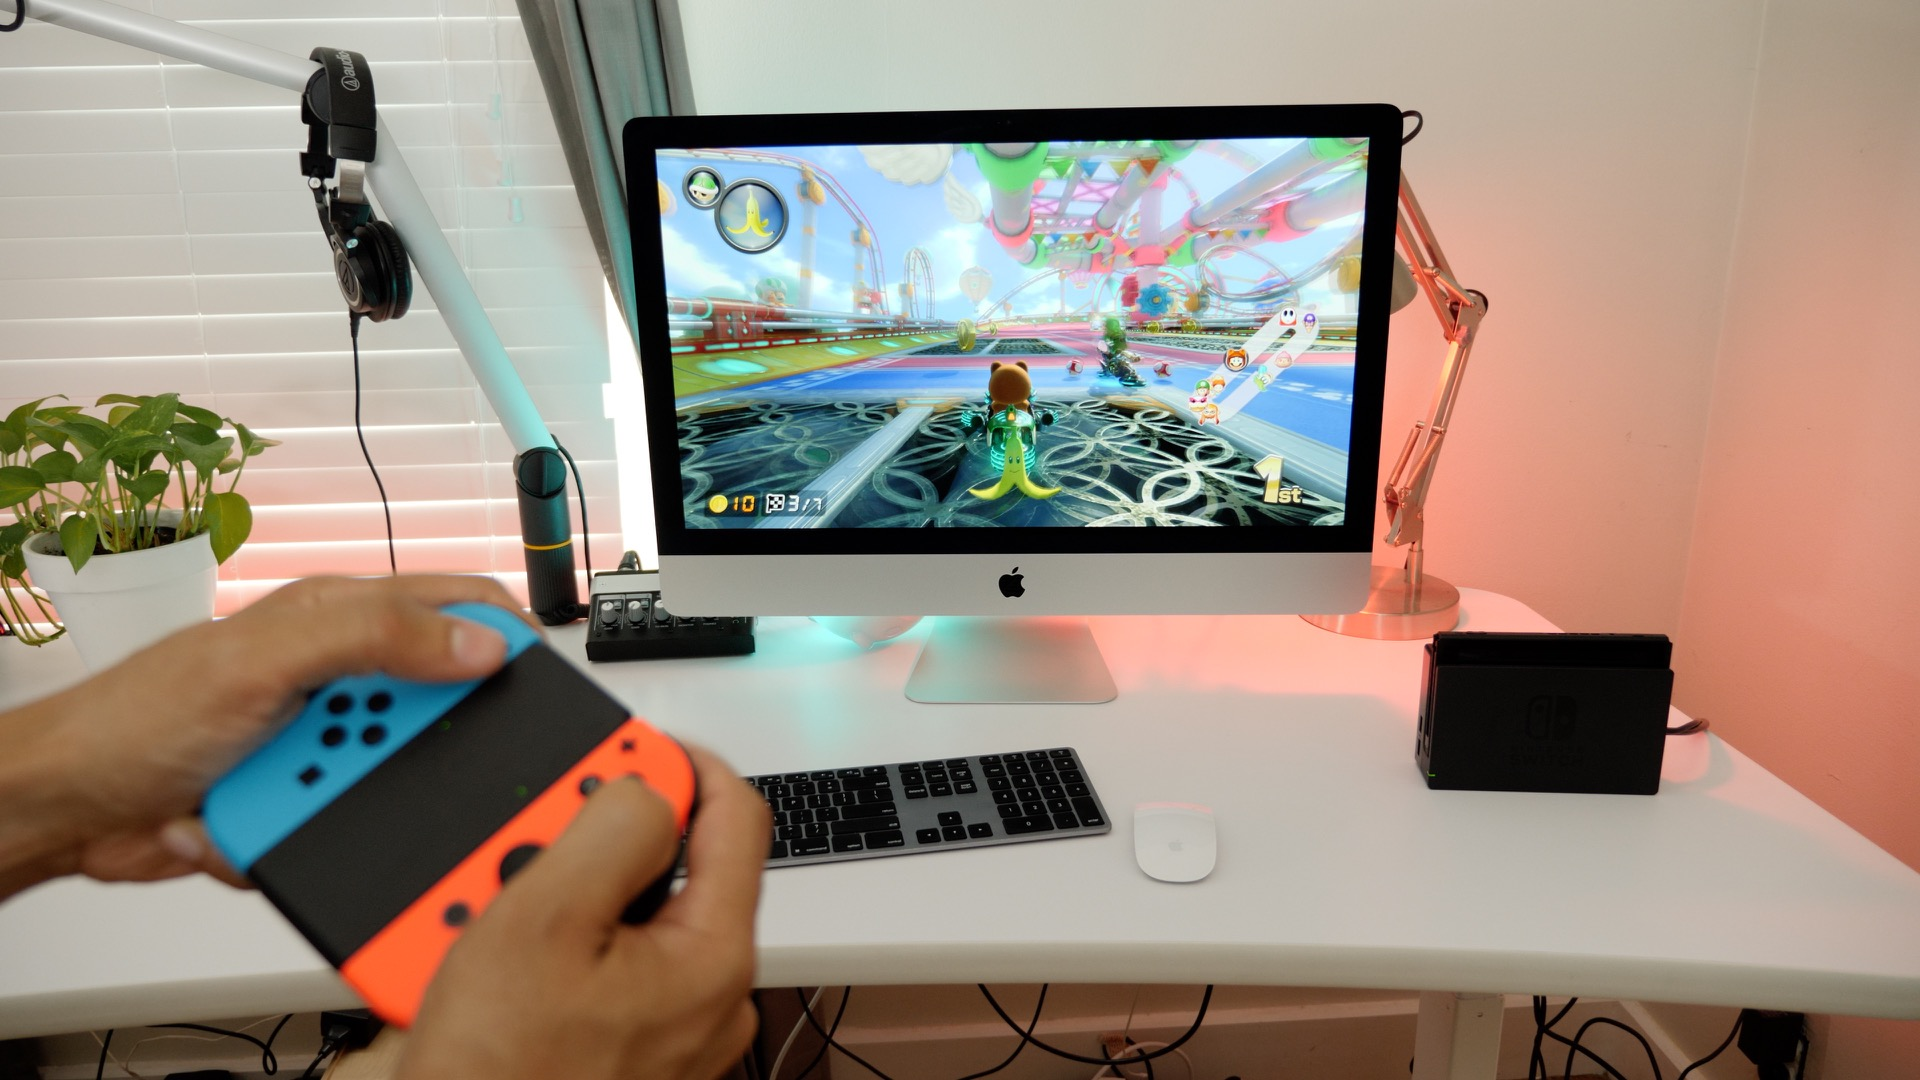 How-to play Nintendo Switch on an iMac's display [Video] - 9to5Toys